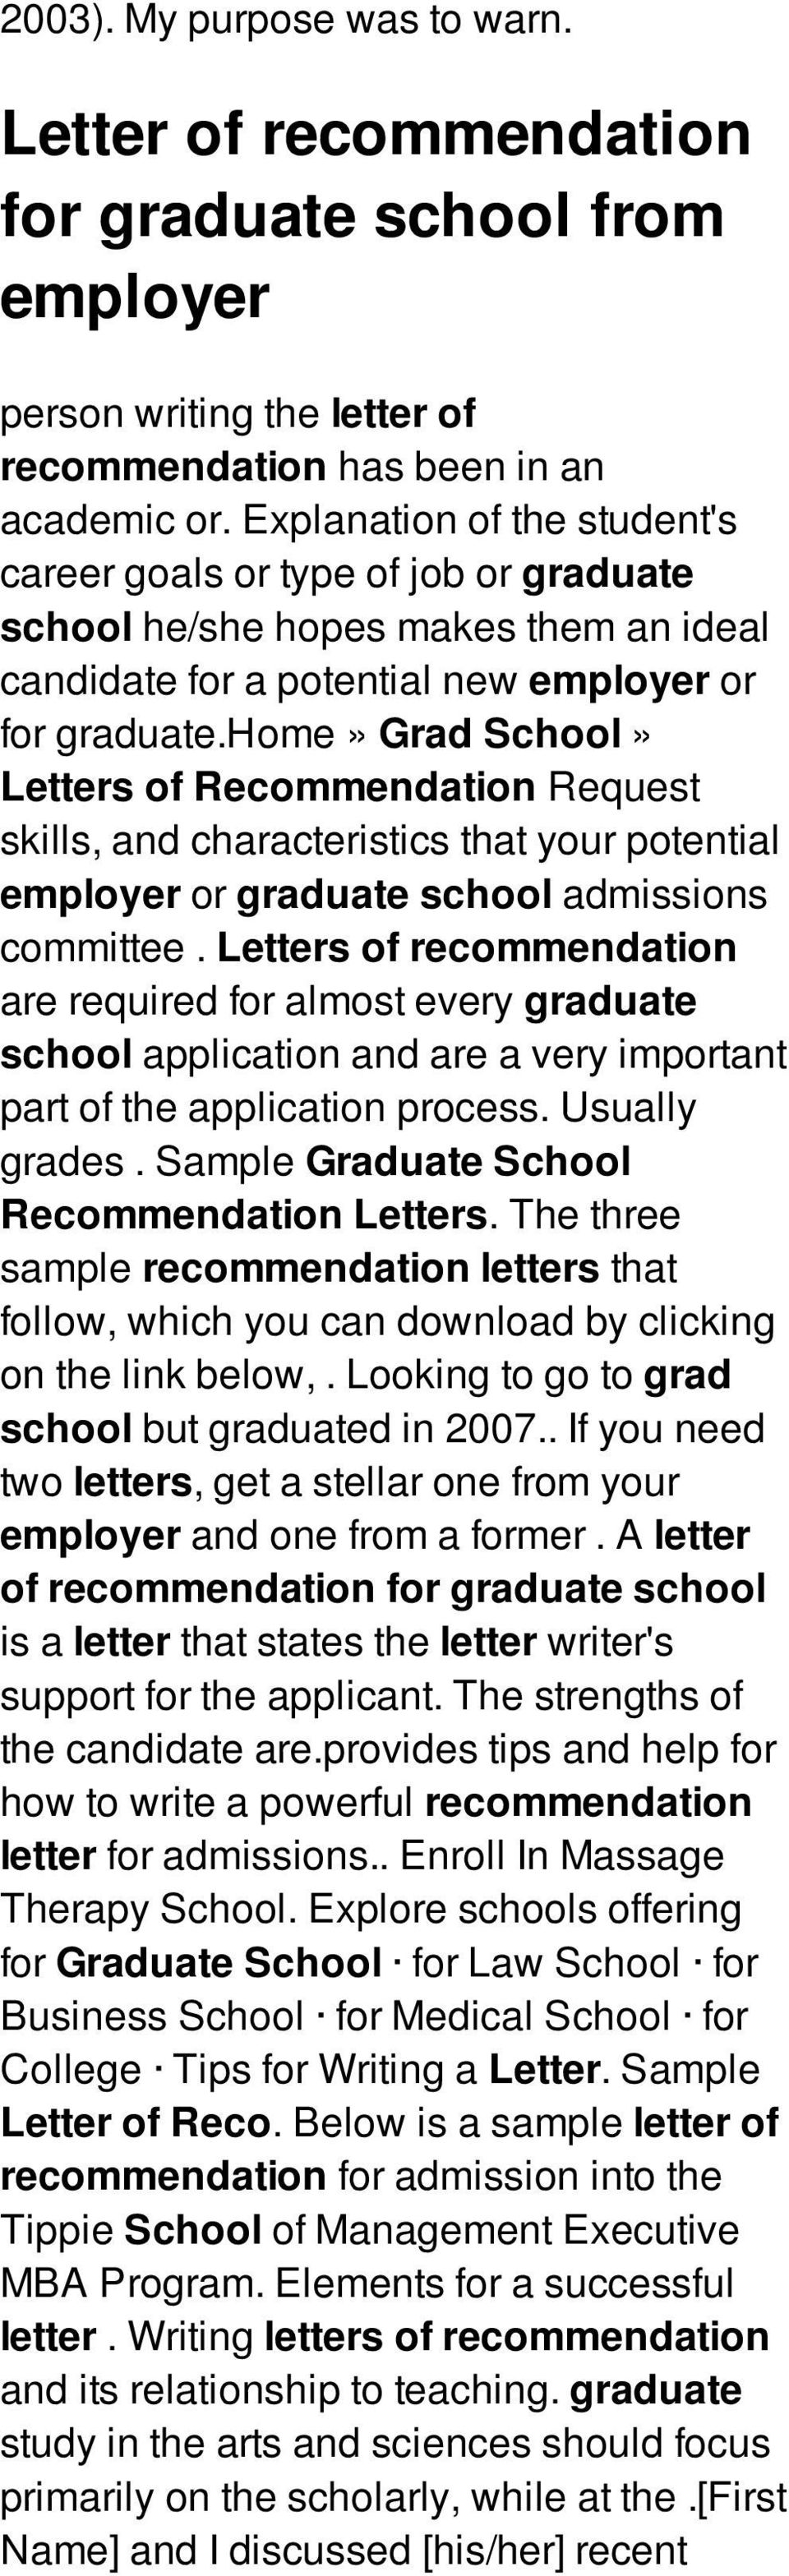 home» Grad School» Letters of Recommendation Request skills, and characteristics that your potential employer or graduate school admissions committee.